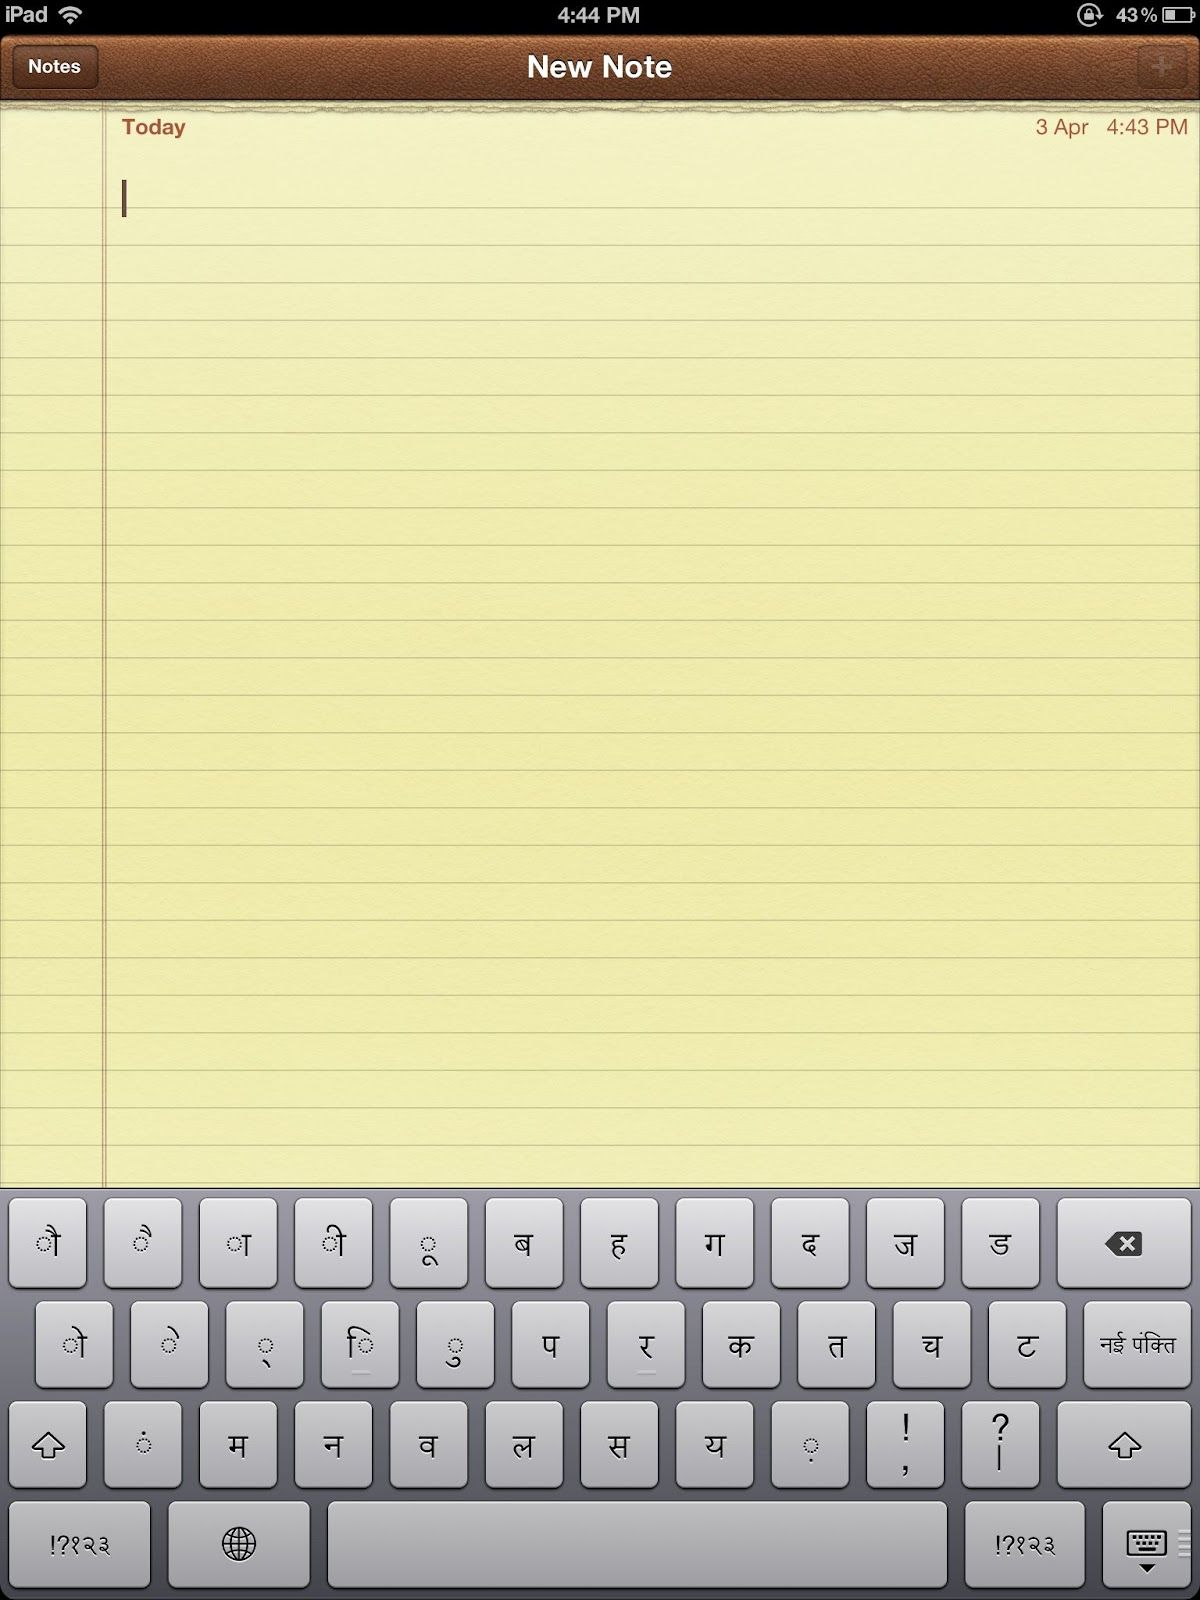 This is a quick guide to configuring your iPad or iPhone so